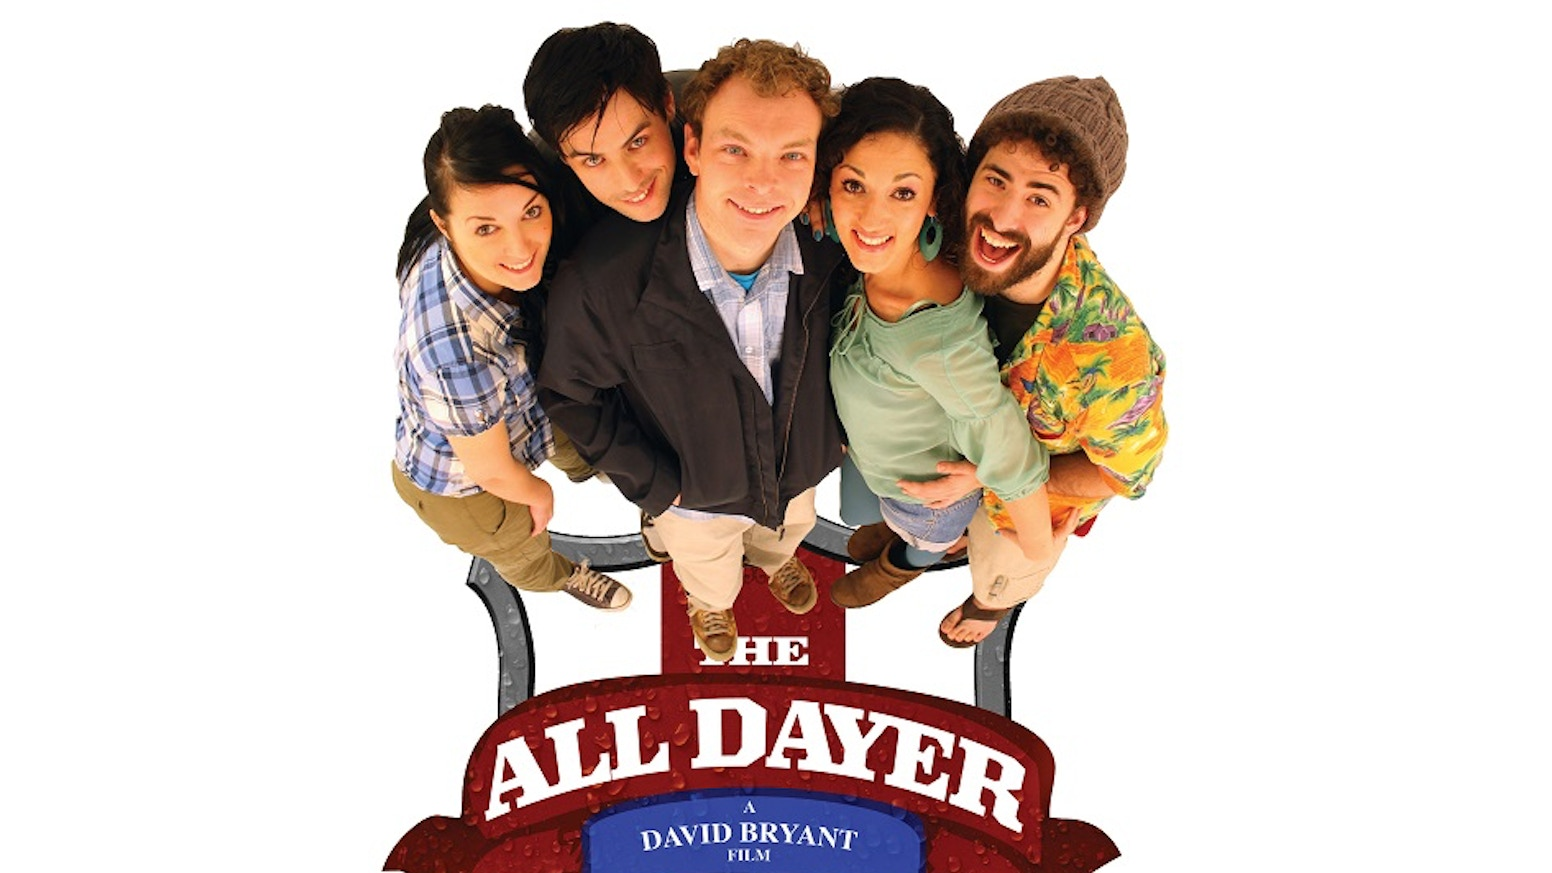 THE ALL DAYER is the outrageous new indie Brit flick comedy which is a sassy cocktail of The Inbetweeners, Human Traffic and Clerks